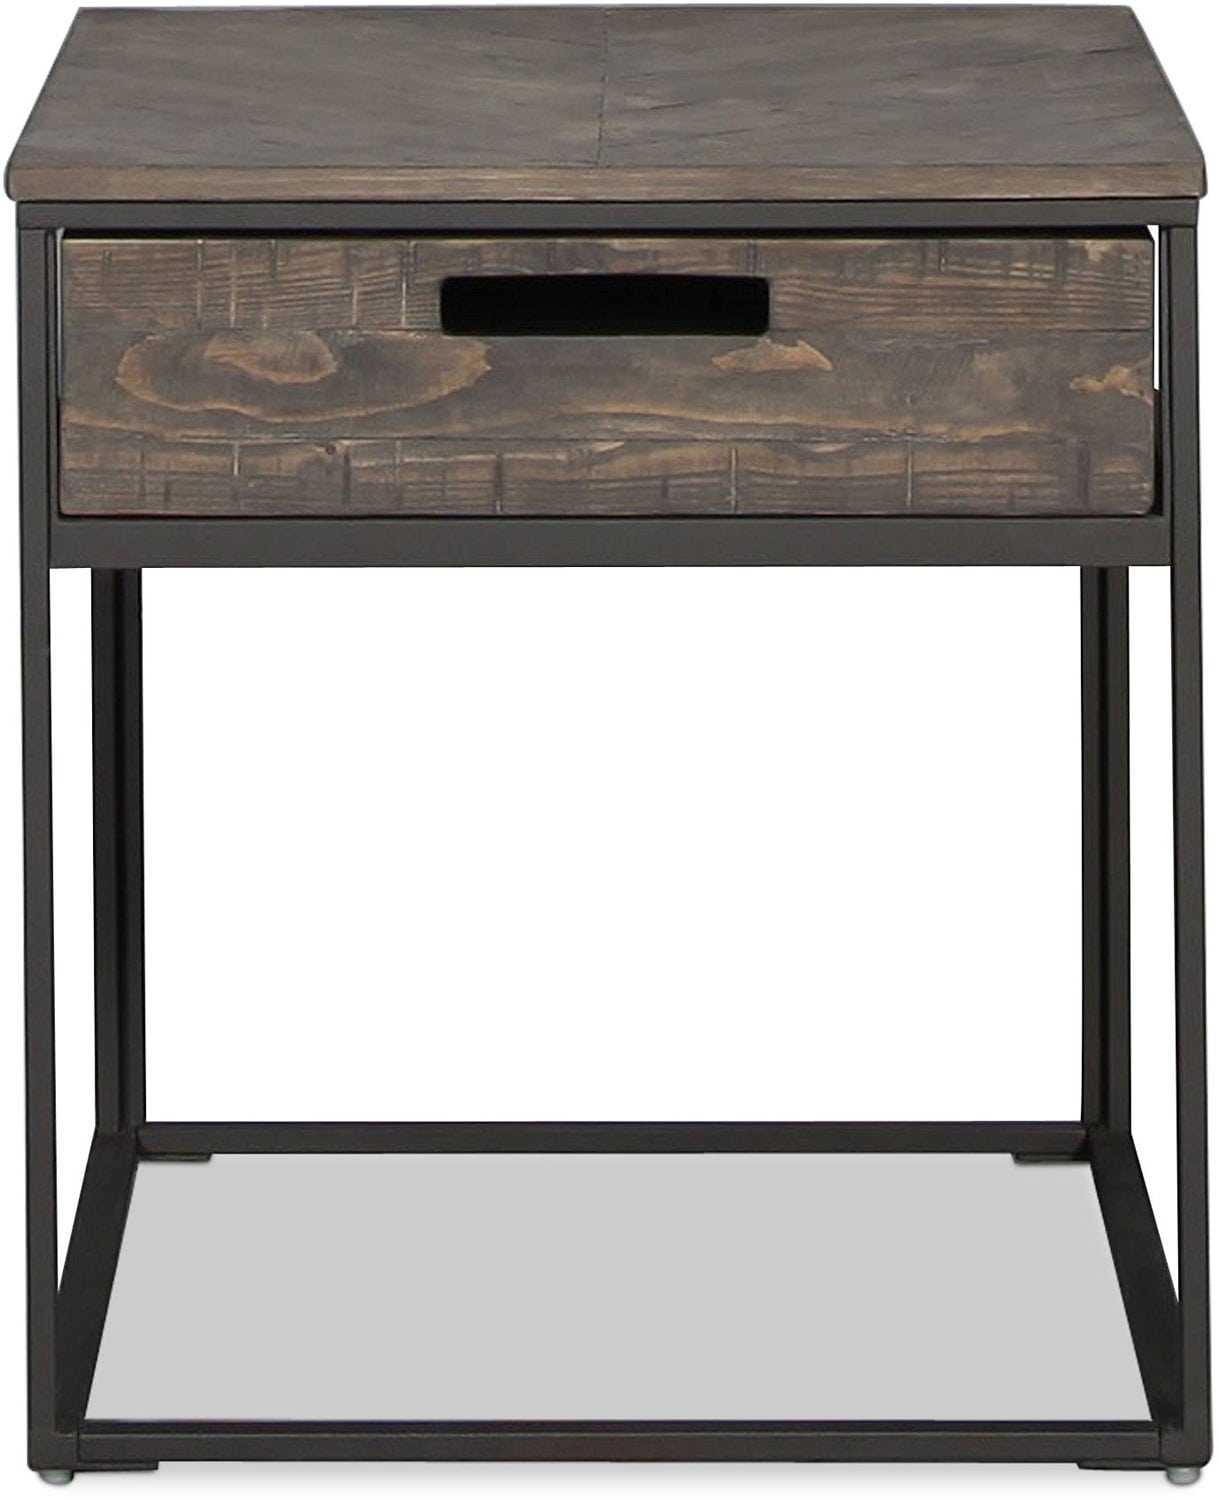 Claremont End Table - Charcoal